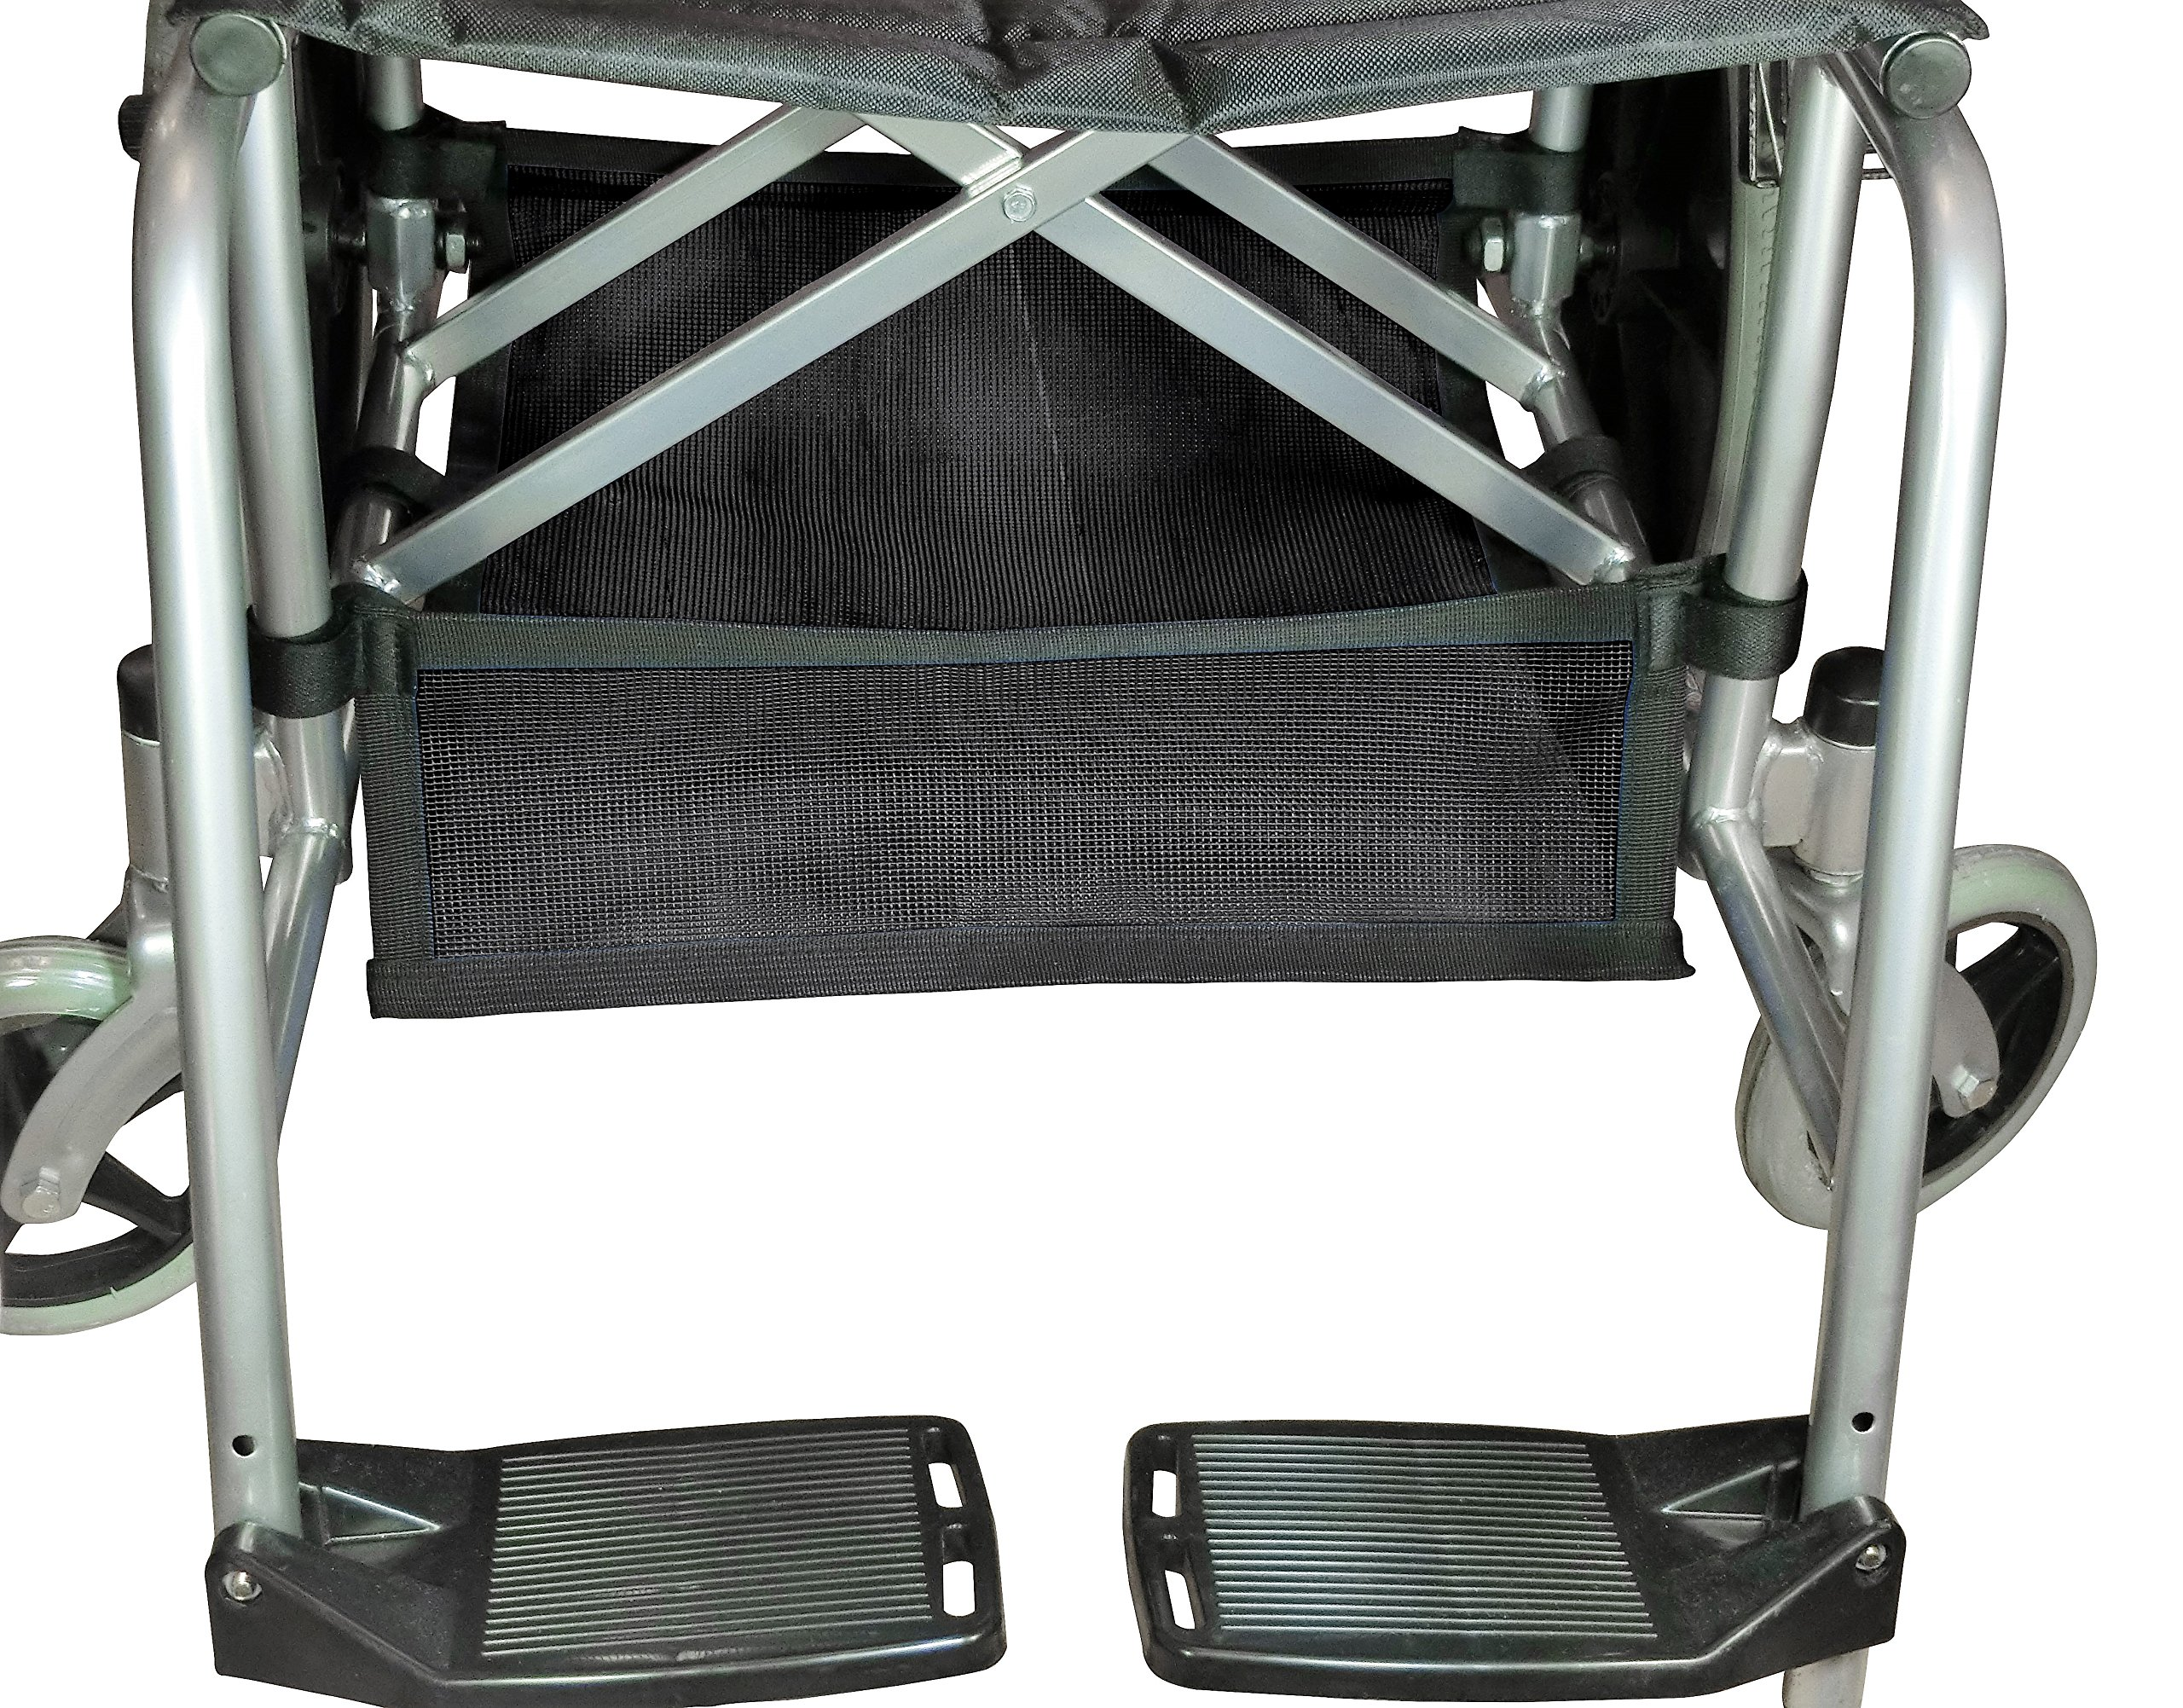 Foldable Wheelchair Under Seat Storage Bag, Wheelchair Underneath Carrier, Wheelchair Under Seat Basket, Wheelchair Bag, Wheelchair Accessories, Wheelchair Underneath Bag